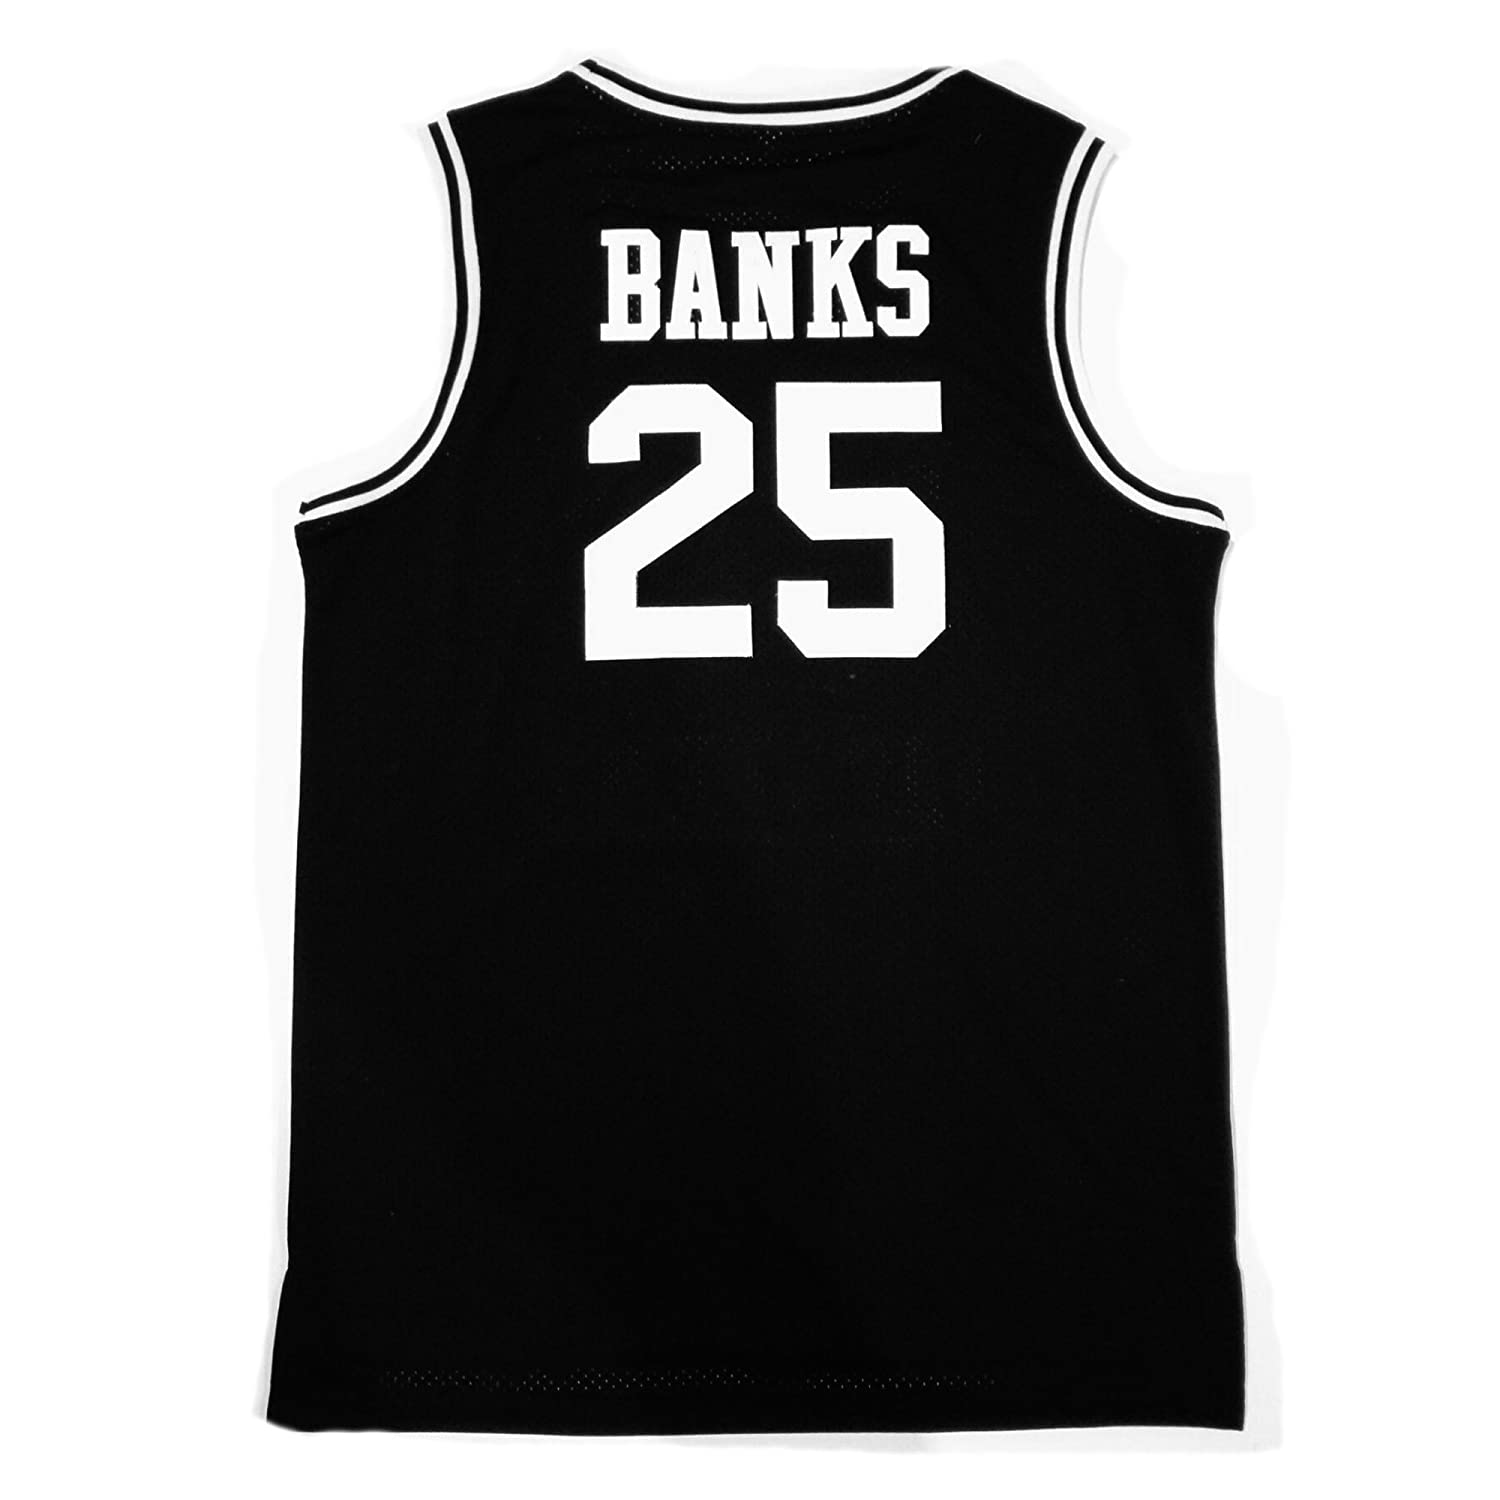 363676e0711a Amazon.com  MOLPE Banks  25 Bel Air Academy Basketball Jersey S-XXXL Black   Clothing